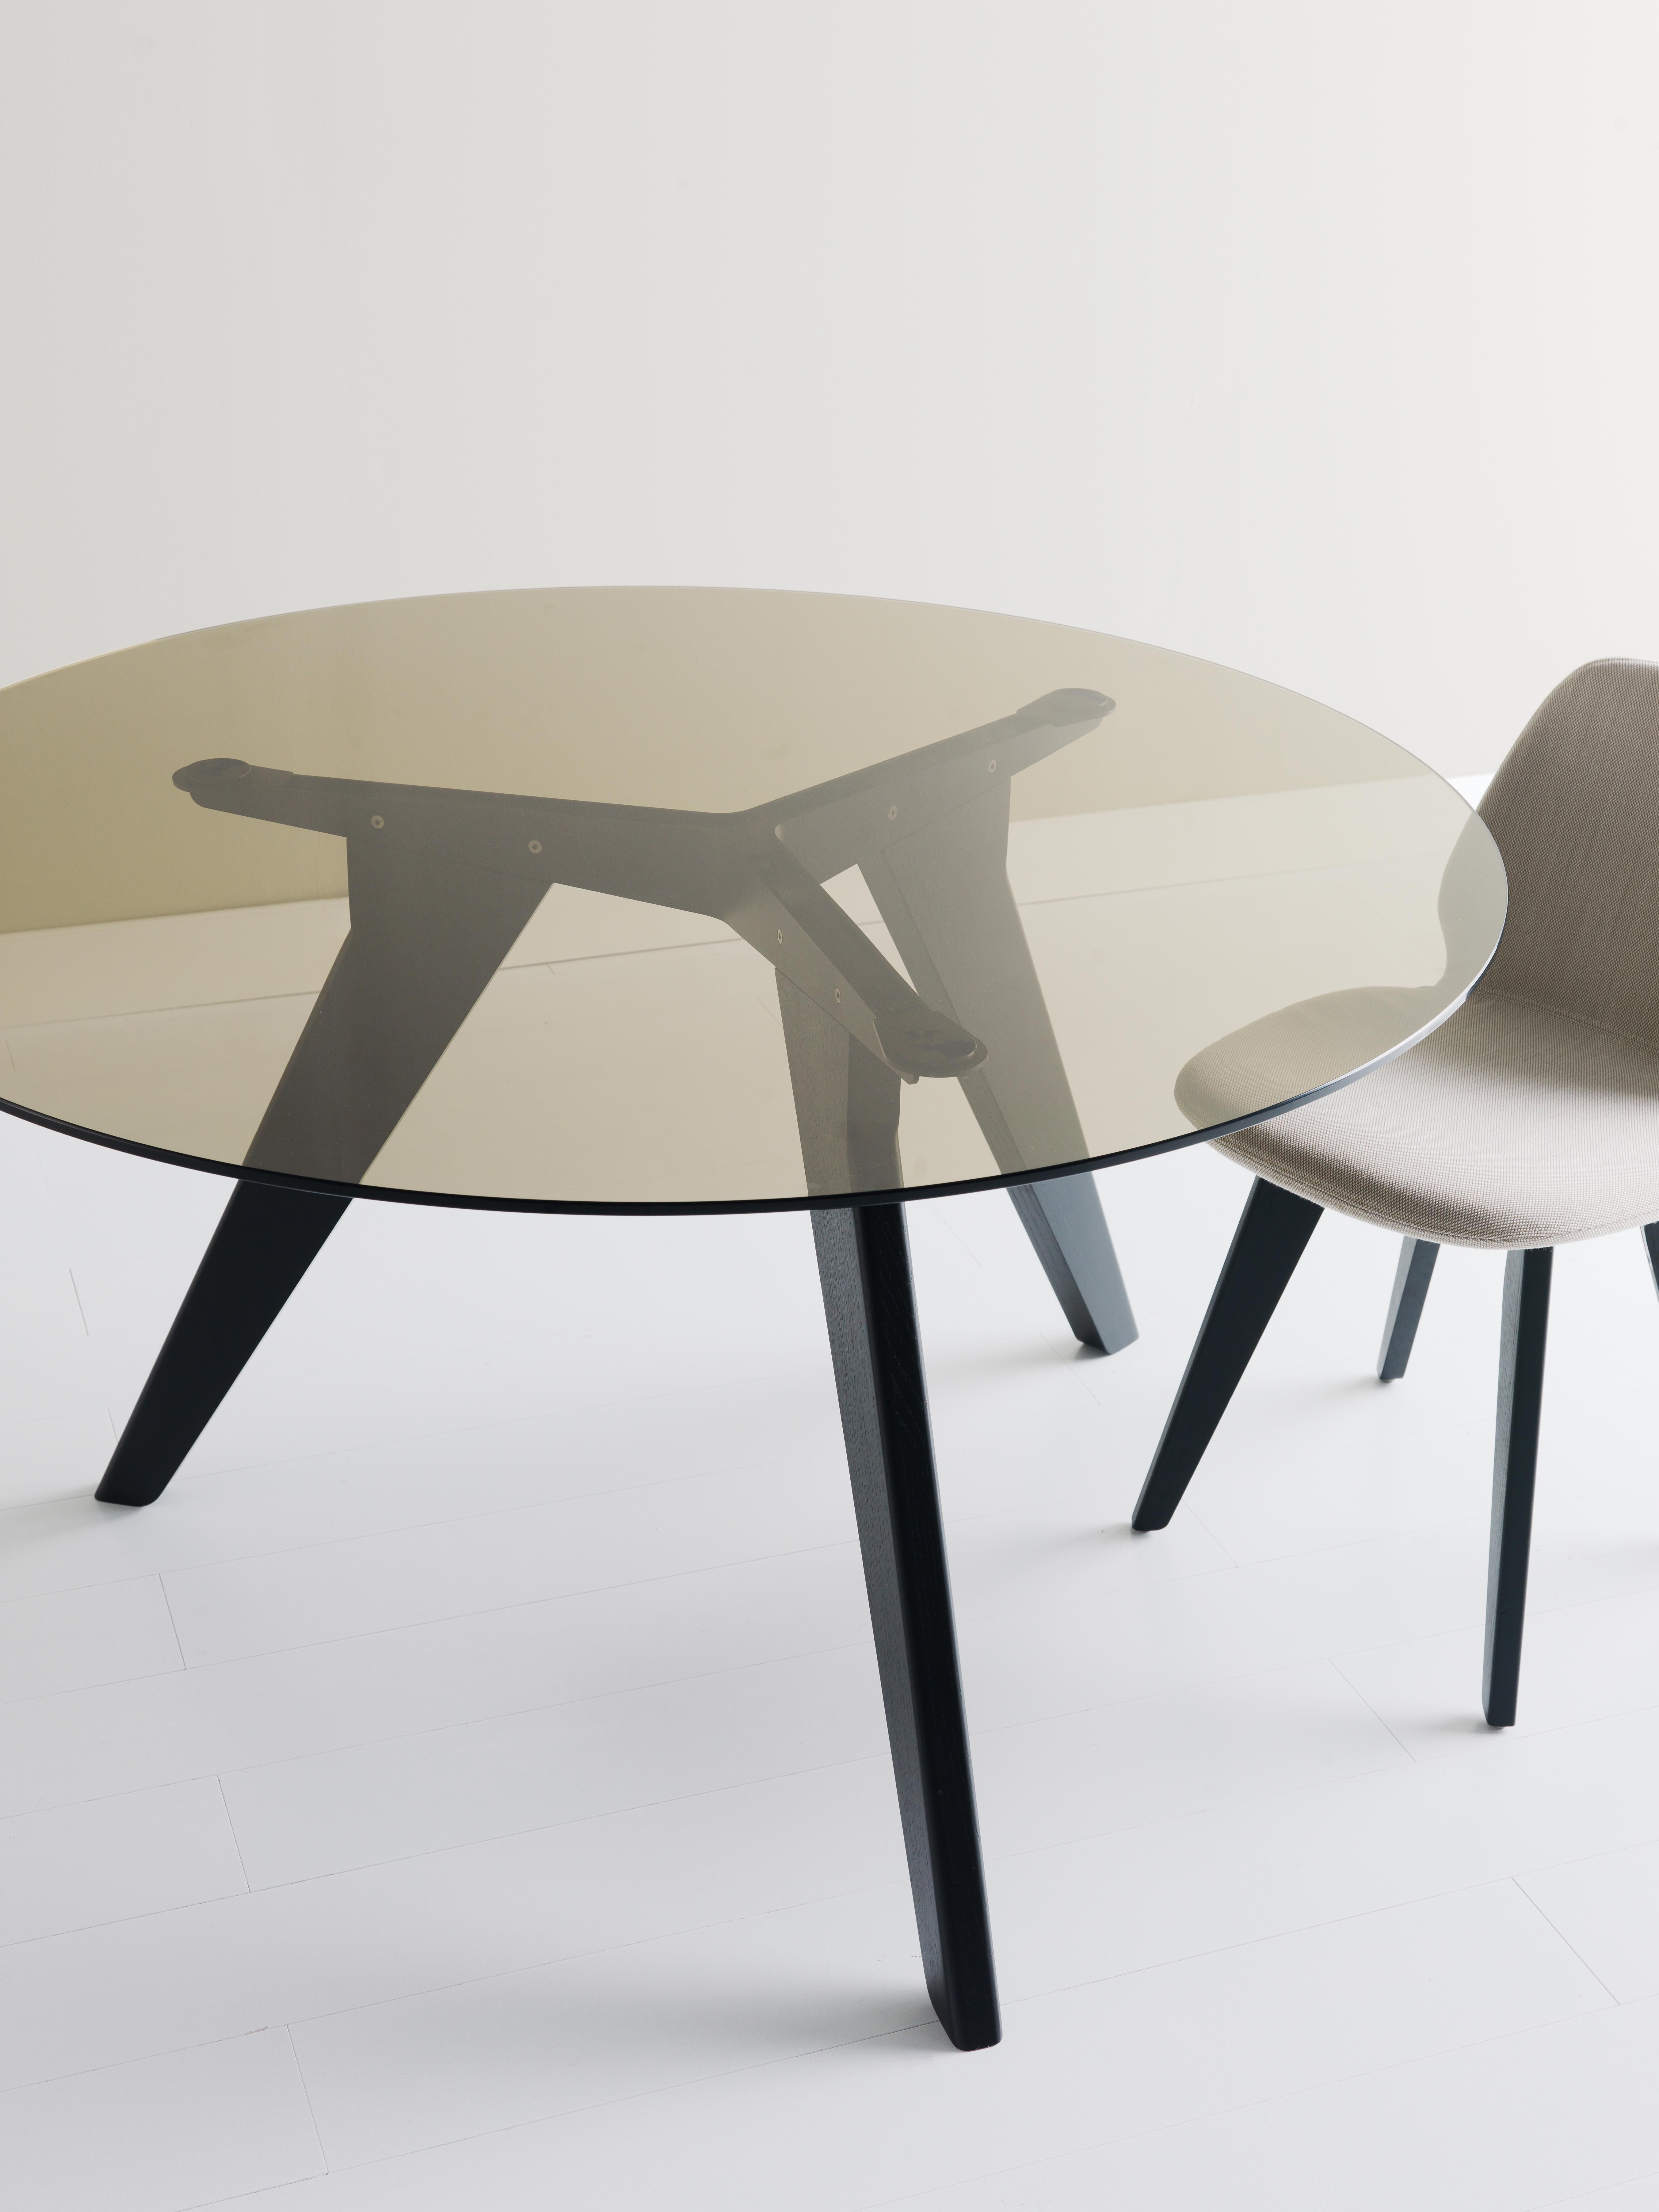 Round glass table top view ago table with round glass top table interiordesign interior